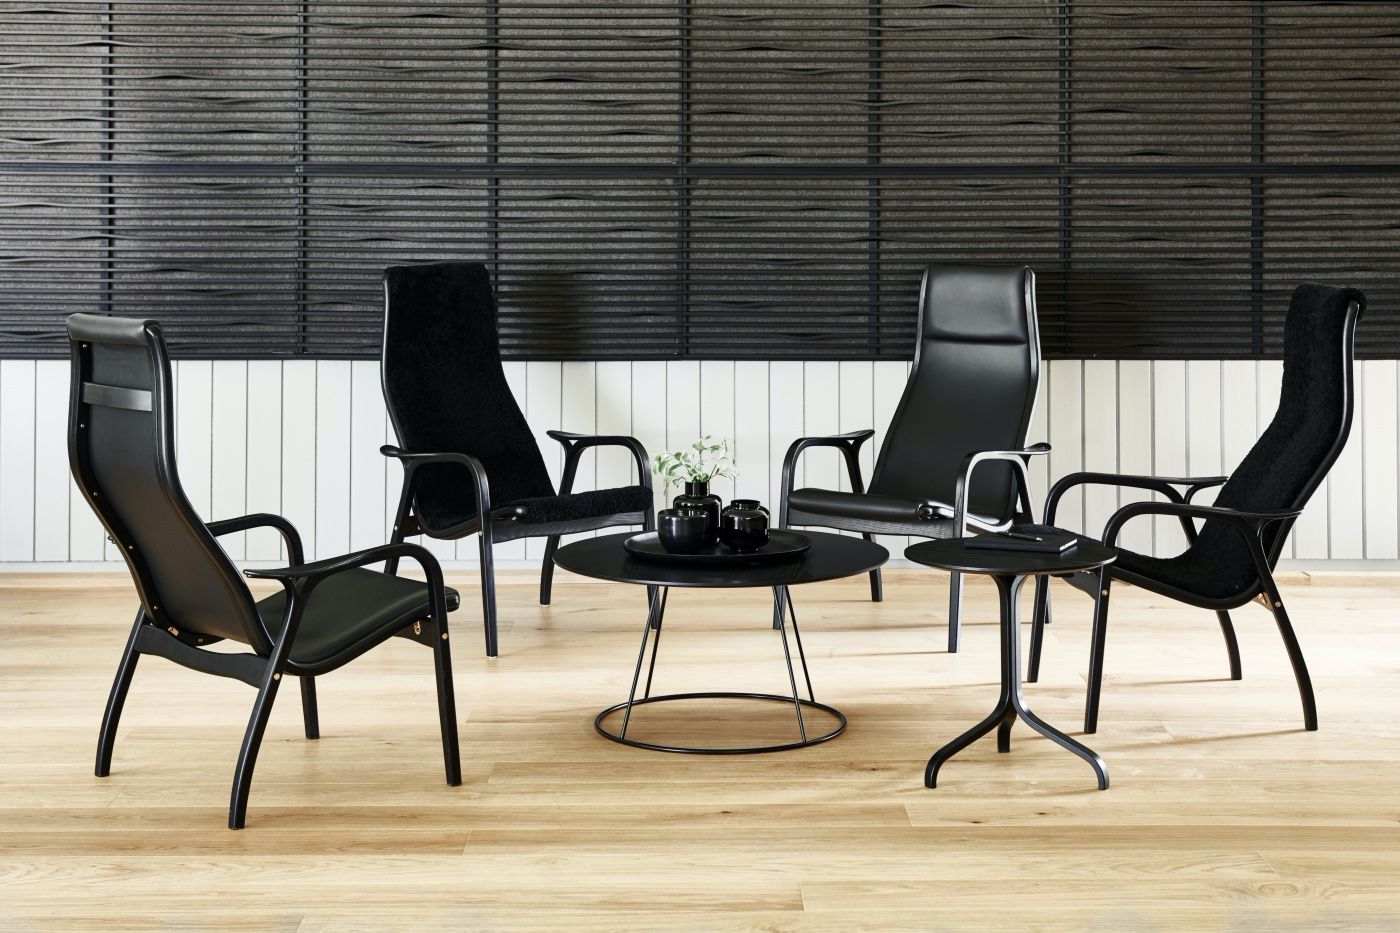 Four Swedese lamino chairs in black leather around a coffee table